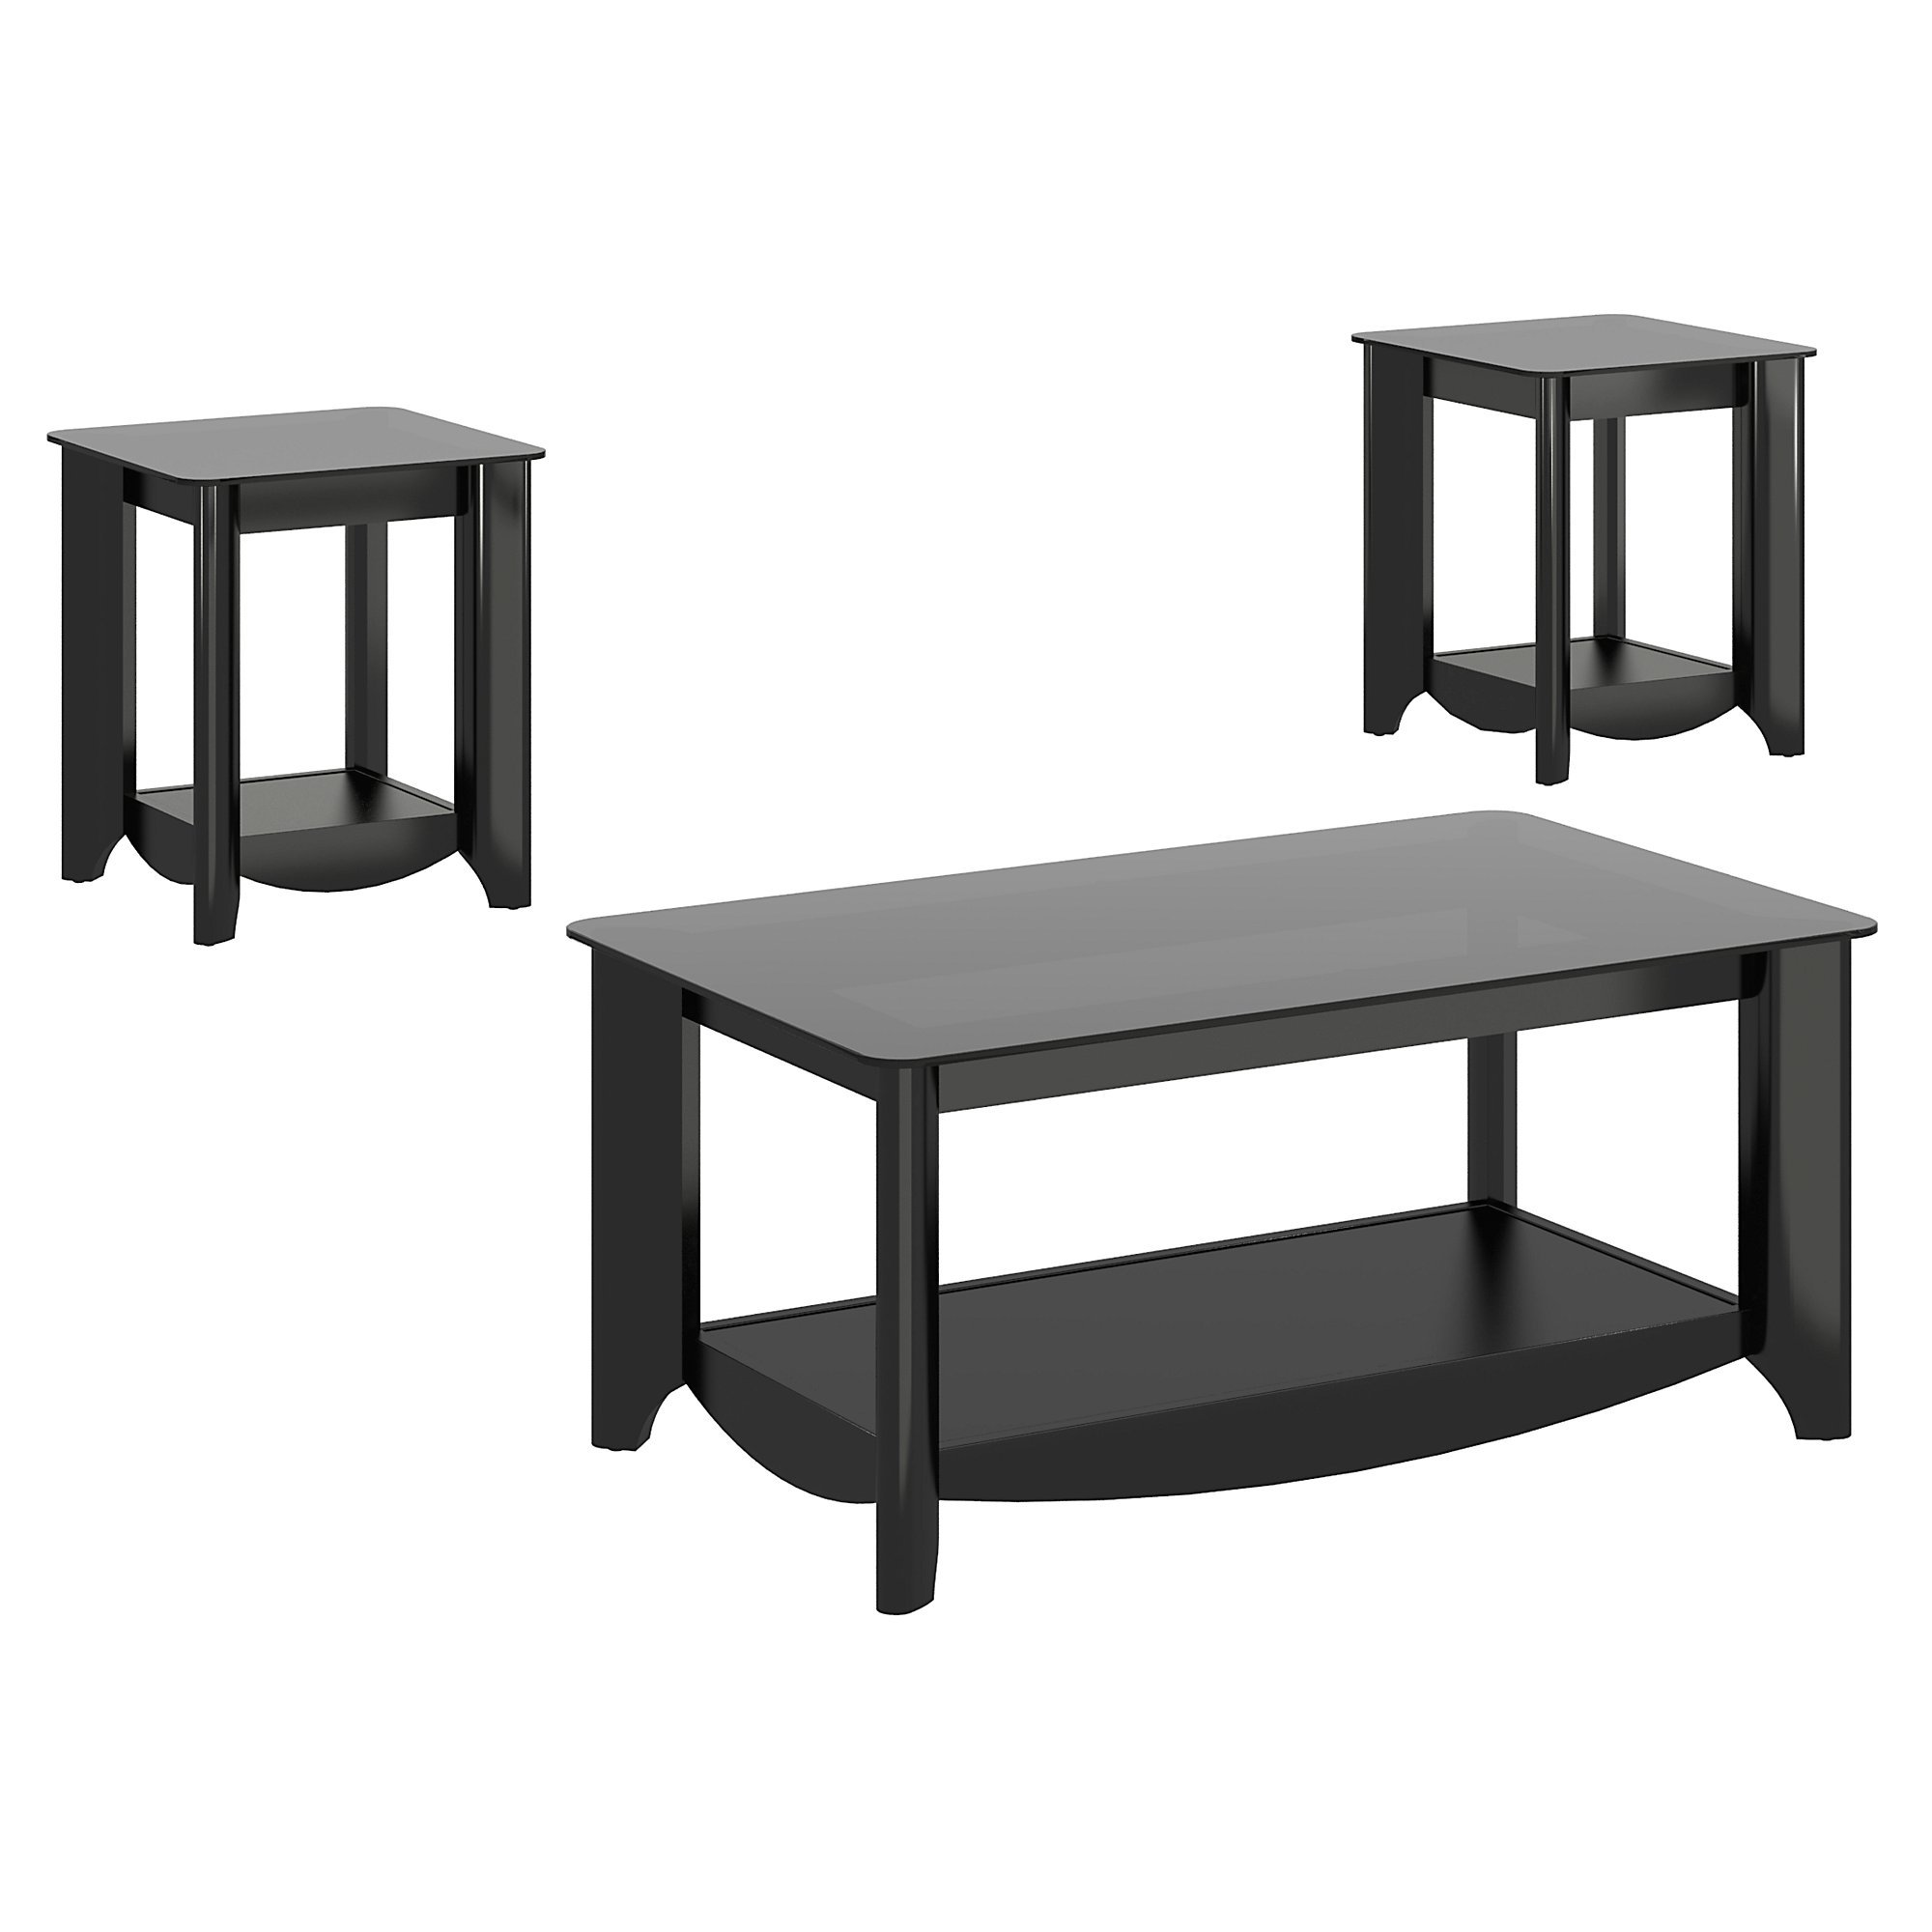 Bush Furniture Aero Coffee Table with End Tables in Classic Black by Bush Furniture